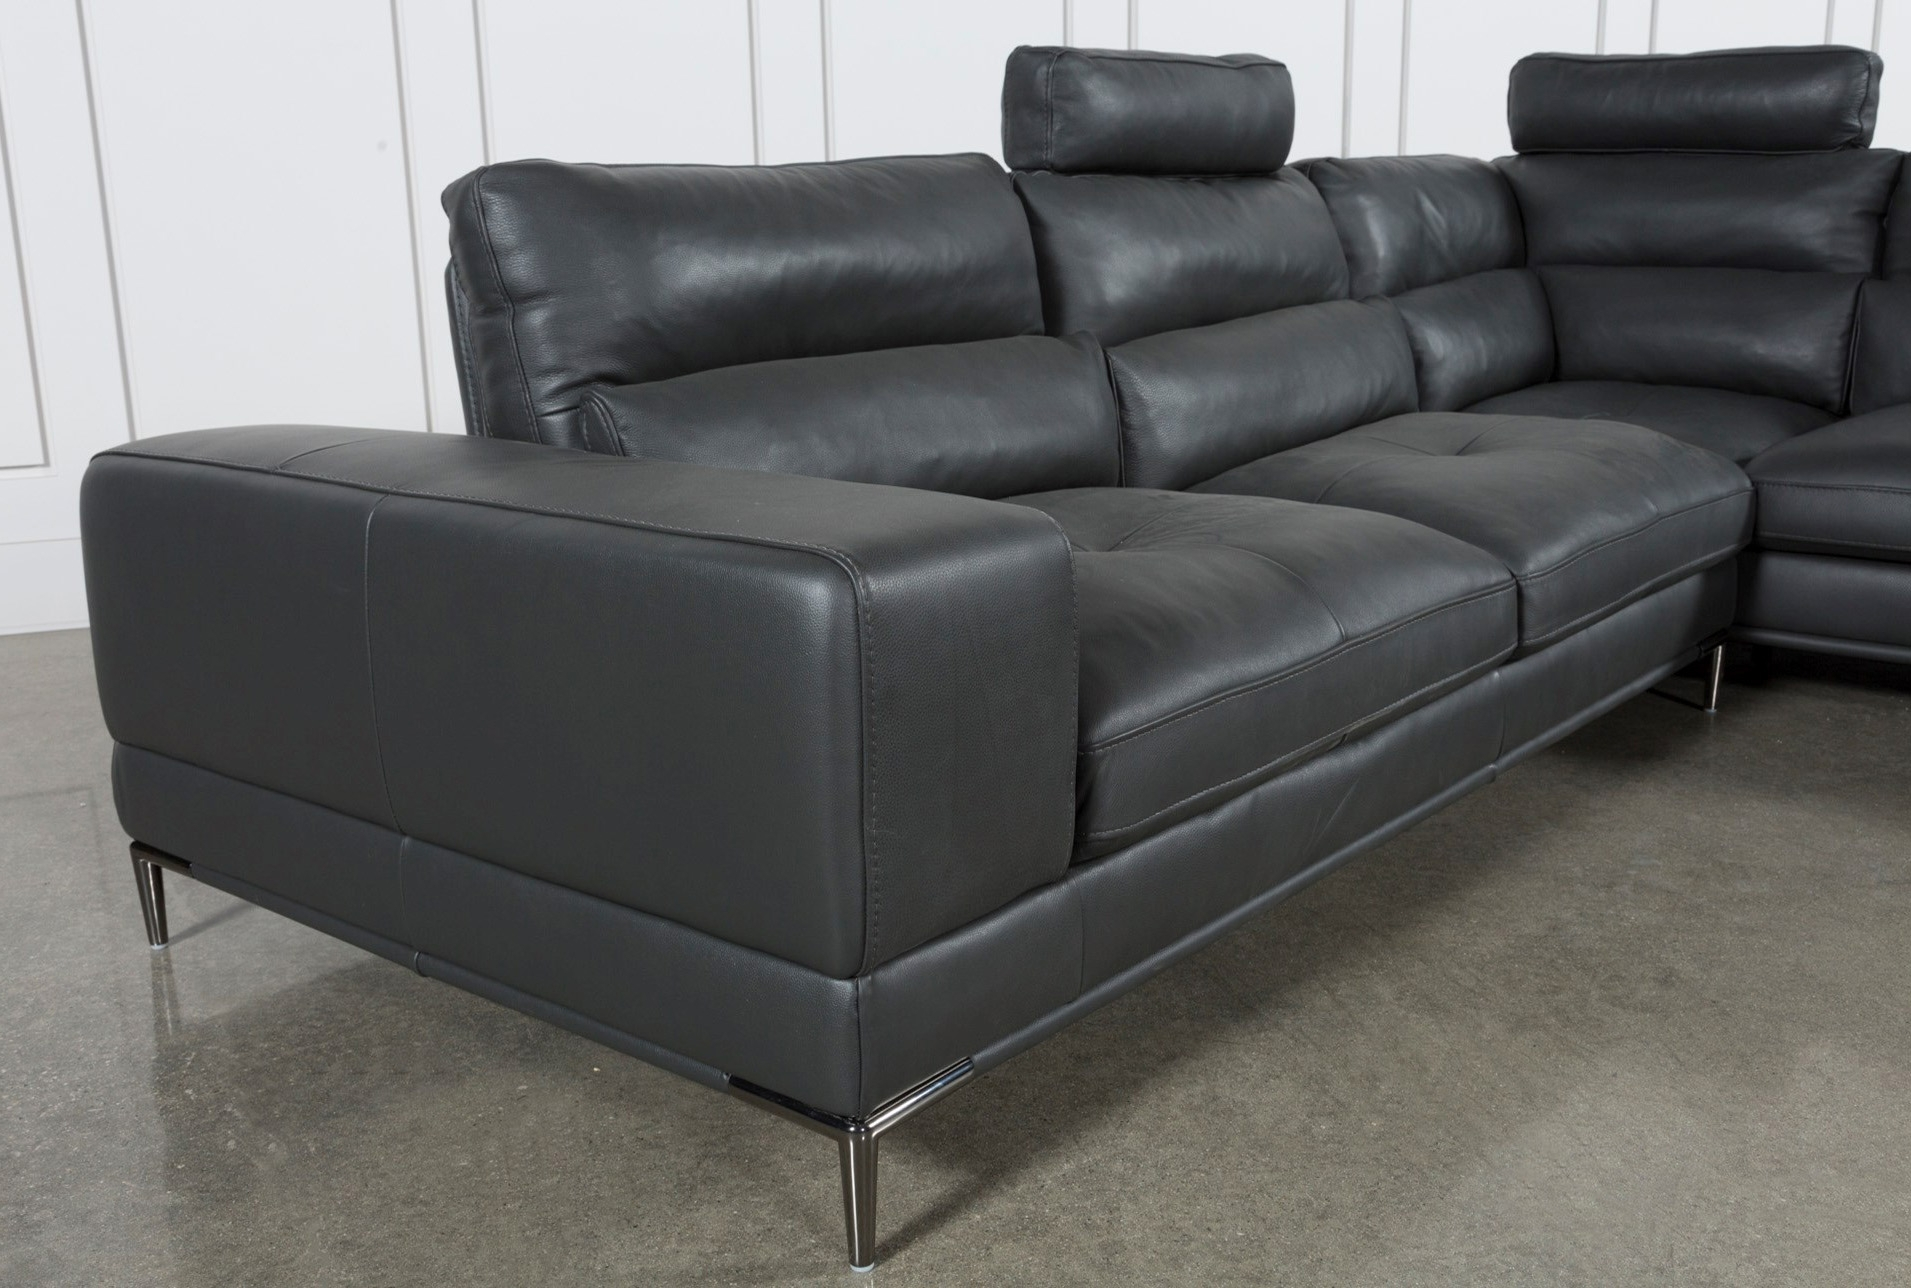 Tenny Dark Grey 2 Piece Right Facing Chaise Sectional W/2 Headrest within Tenny Dark Grey 2 Piece Left Facing Chaise Sectionals With 2 Headrest (Image 30 of 30)